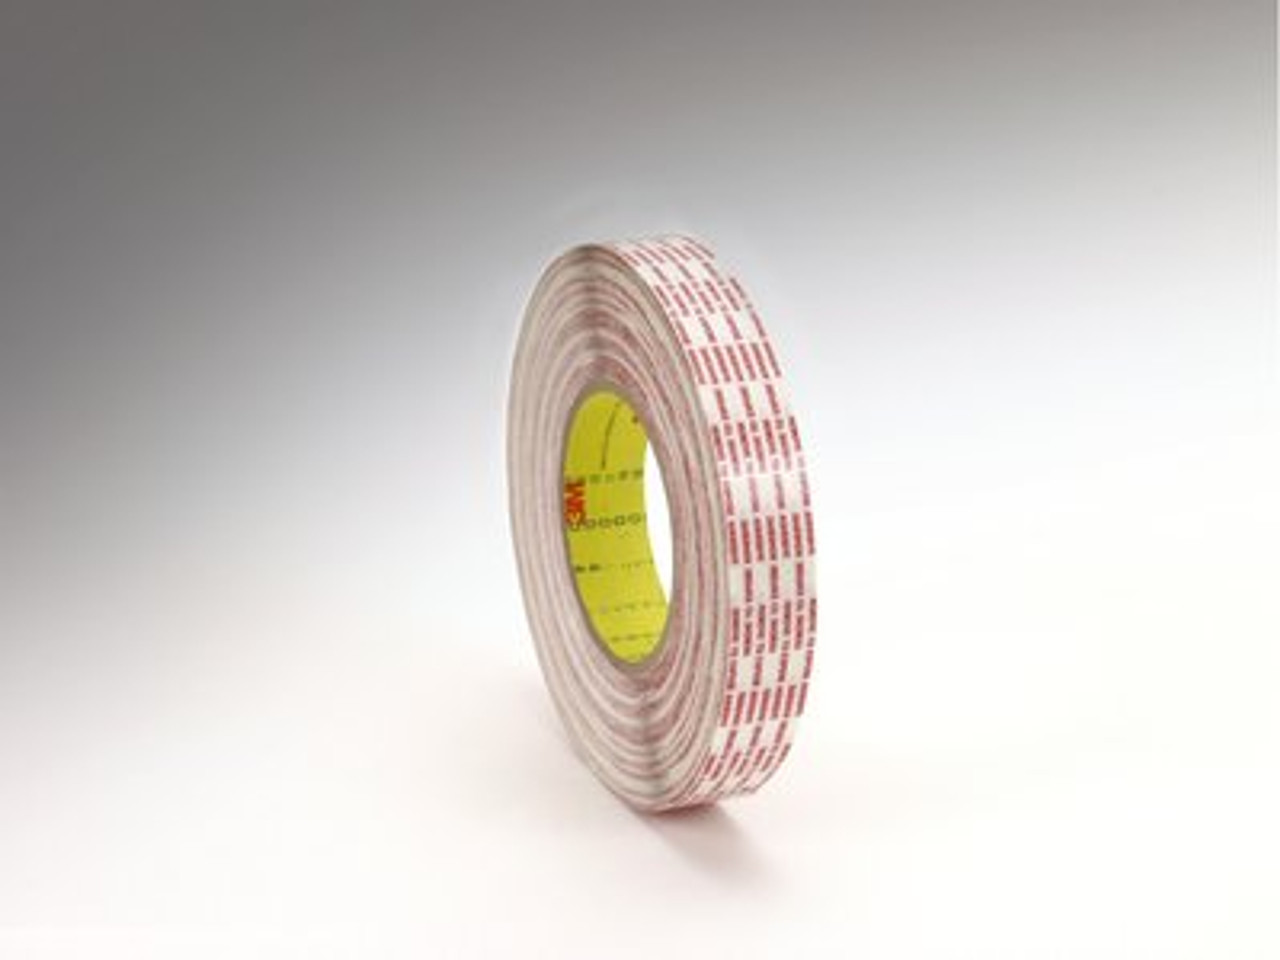 3M™ Double Coated Tape Extended Liner 476XL Translucent, 1/2 in x 360 yd 6.0 mil